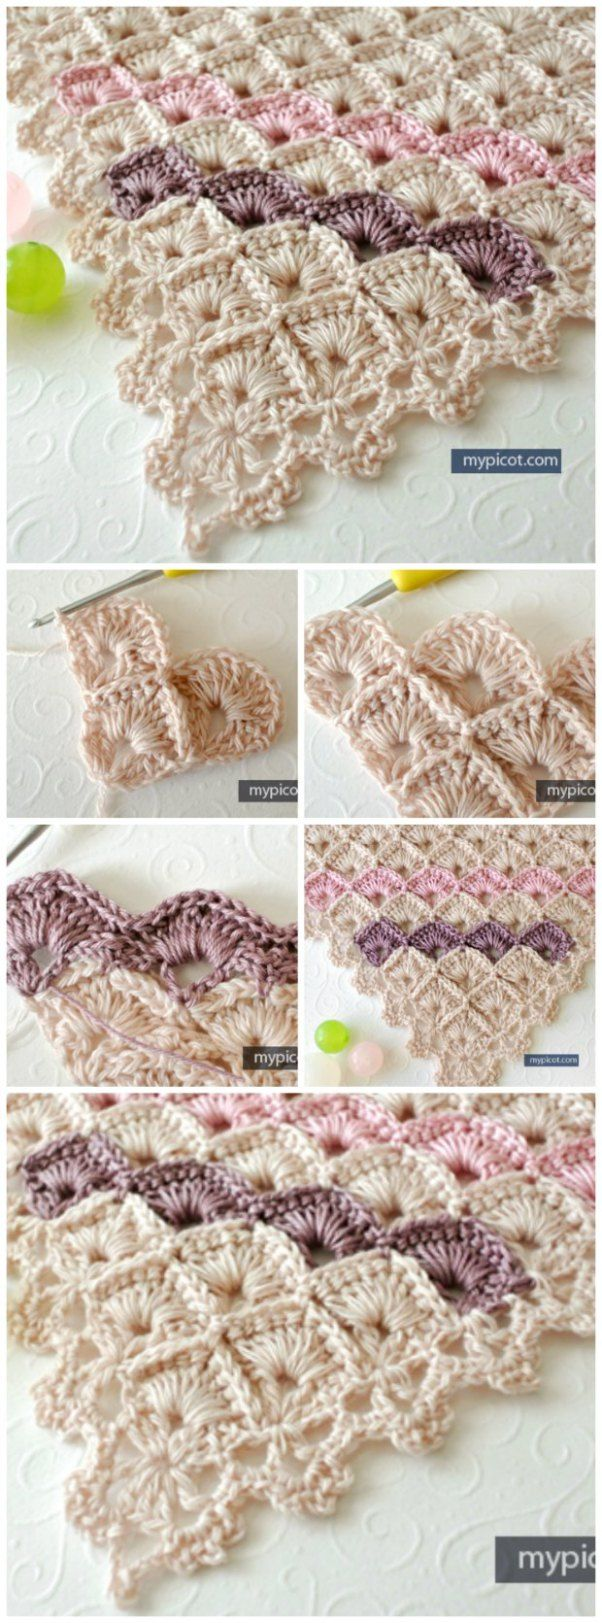 Crochet Triangle Shawl Box Stitch Pattern - Free Tutorial | crochet ...